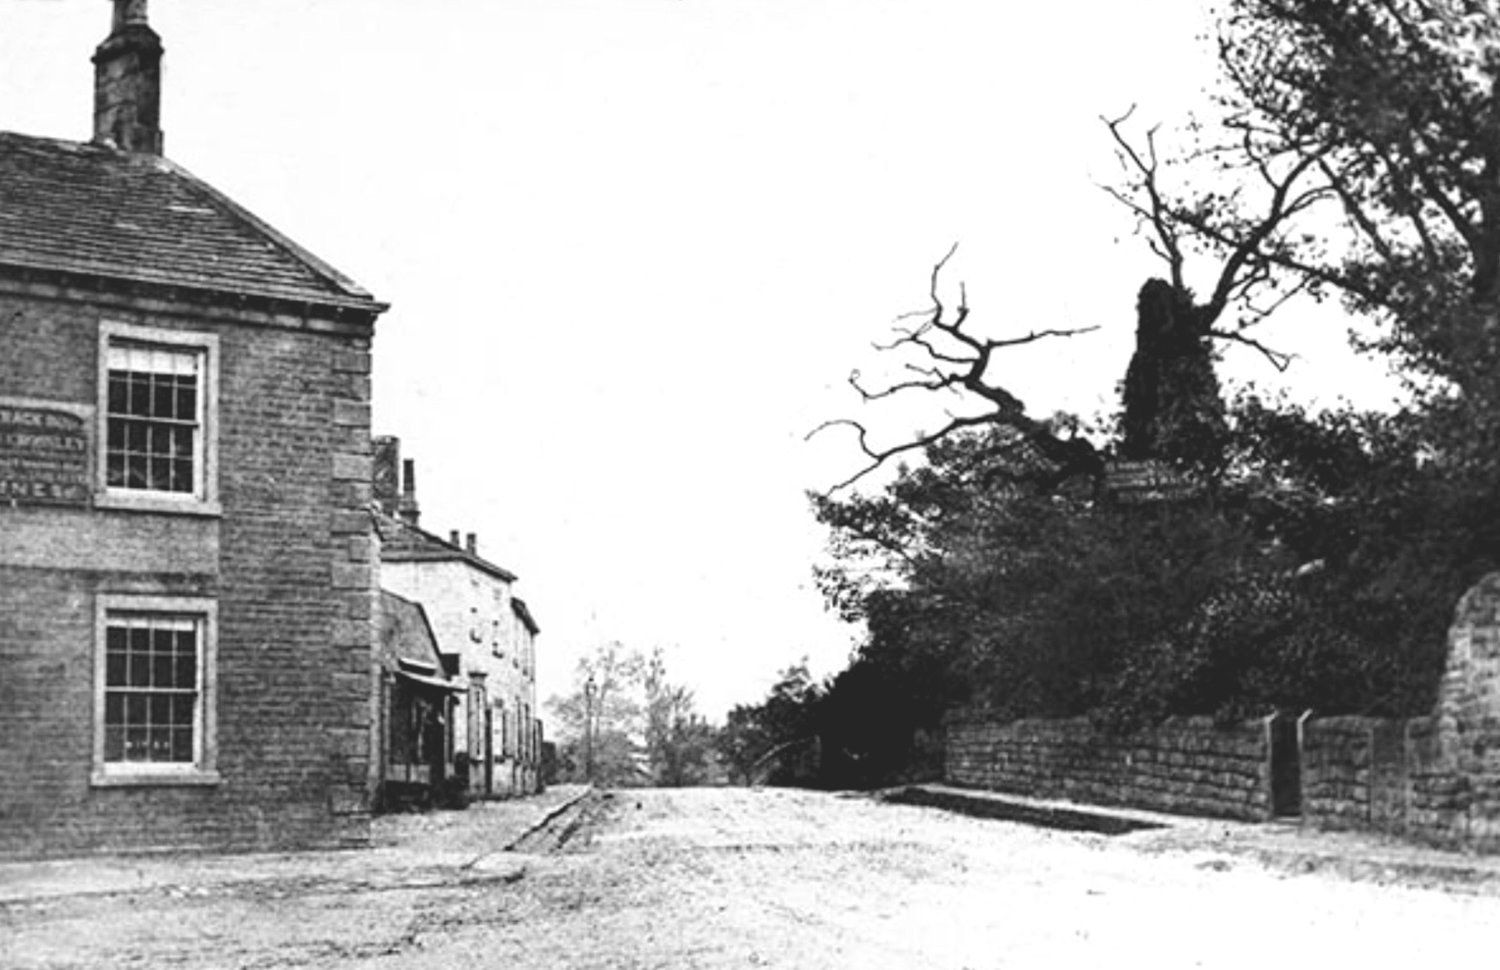 Otley Road, between Skyrack and Shire Oak, c1852